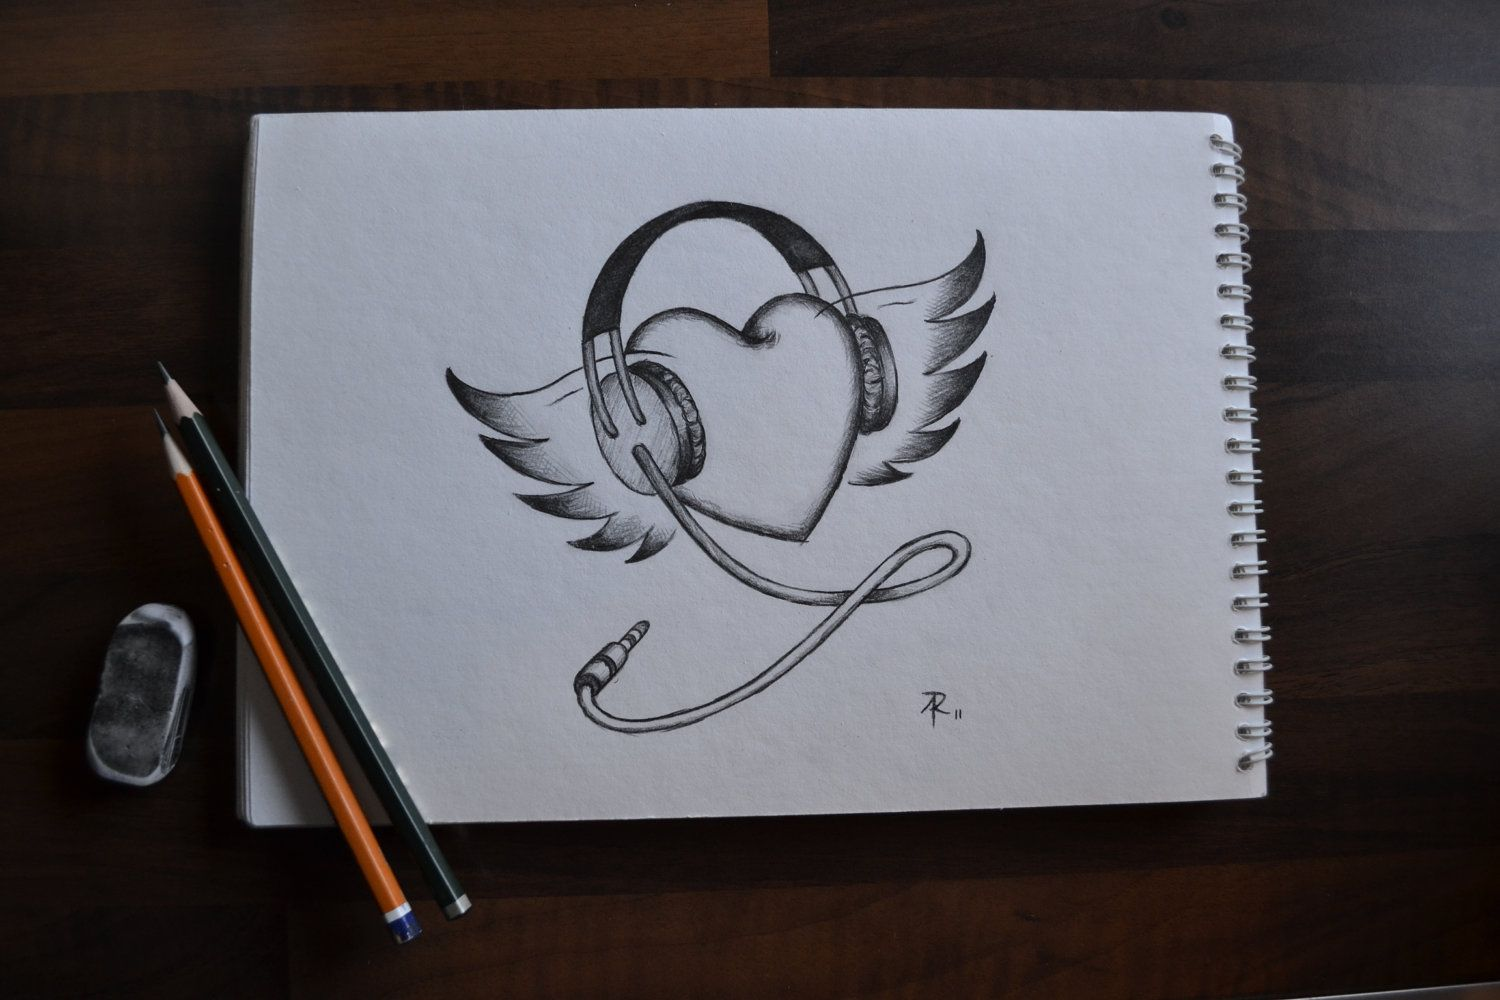 Heart with wings and headphones drawing